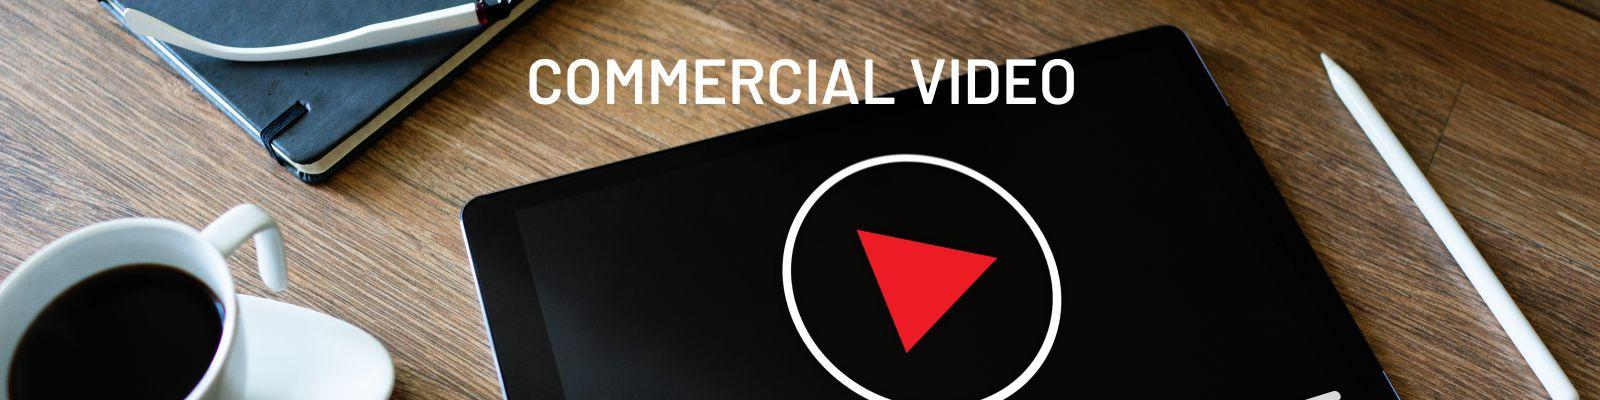 Commercial Video_A